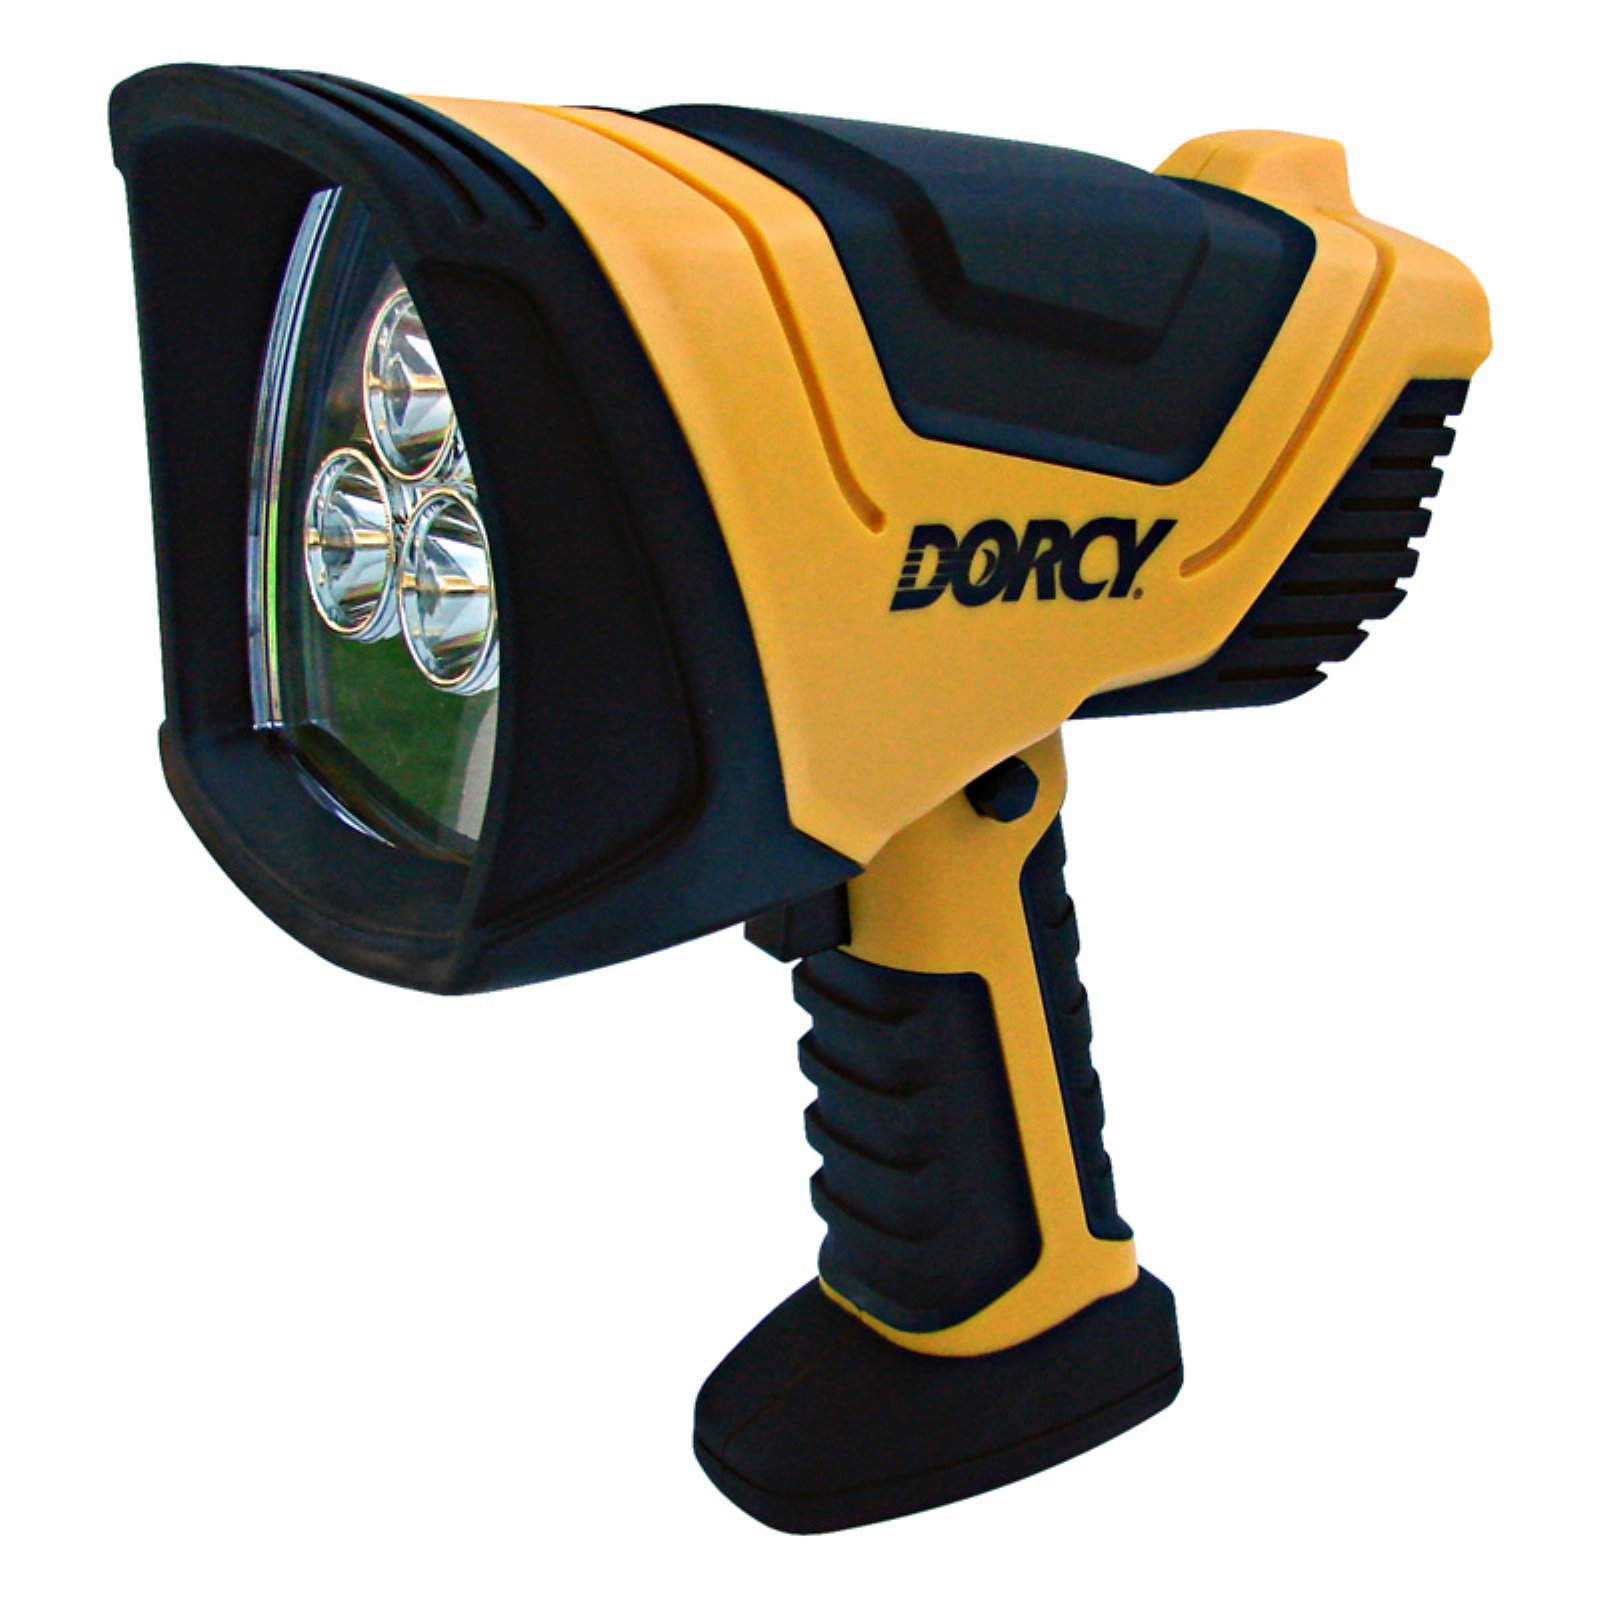 Dorcy International Rechargeable LED Cyber Spotlight by dorcy